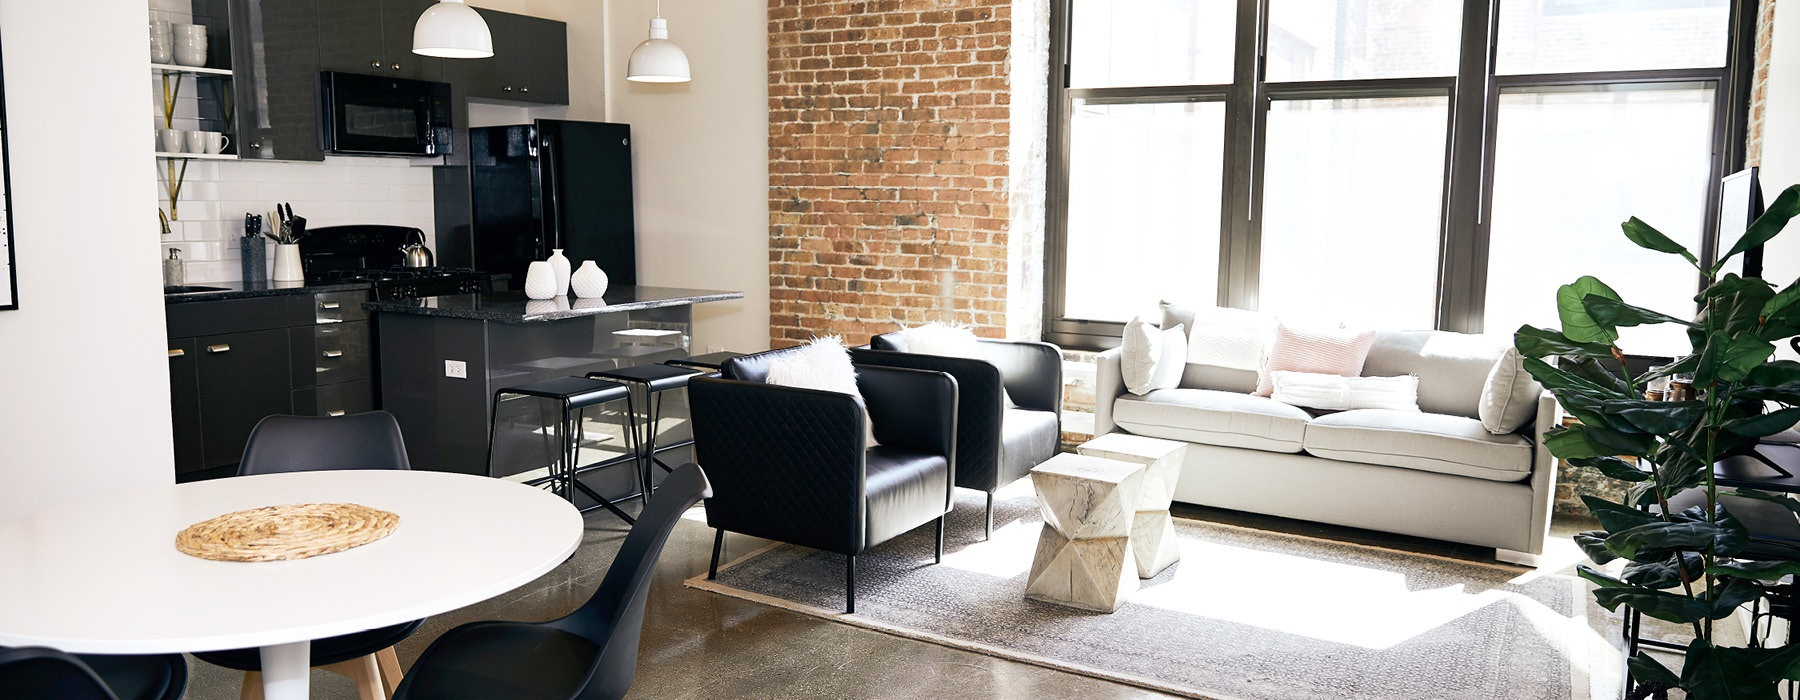 spacious, loft style apartment with concrete floors, brick walls and large windows